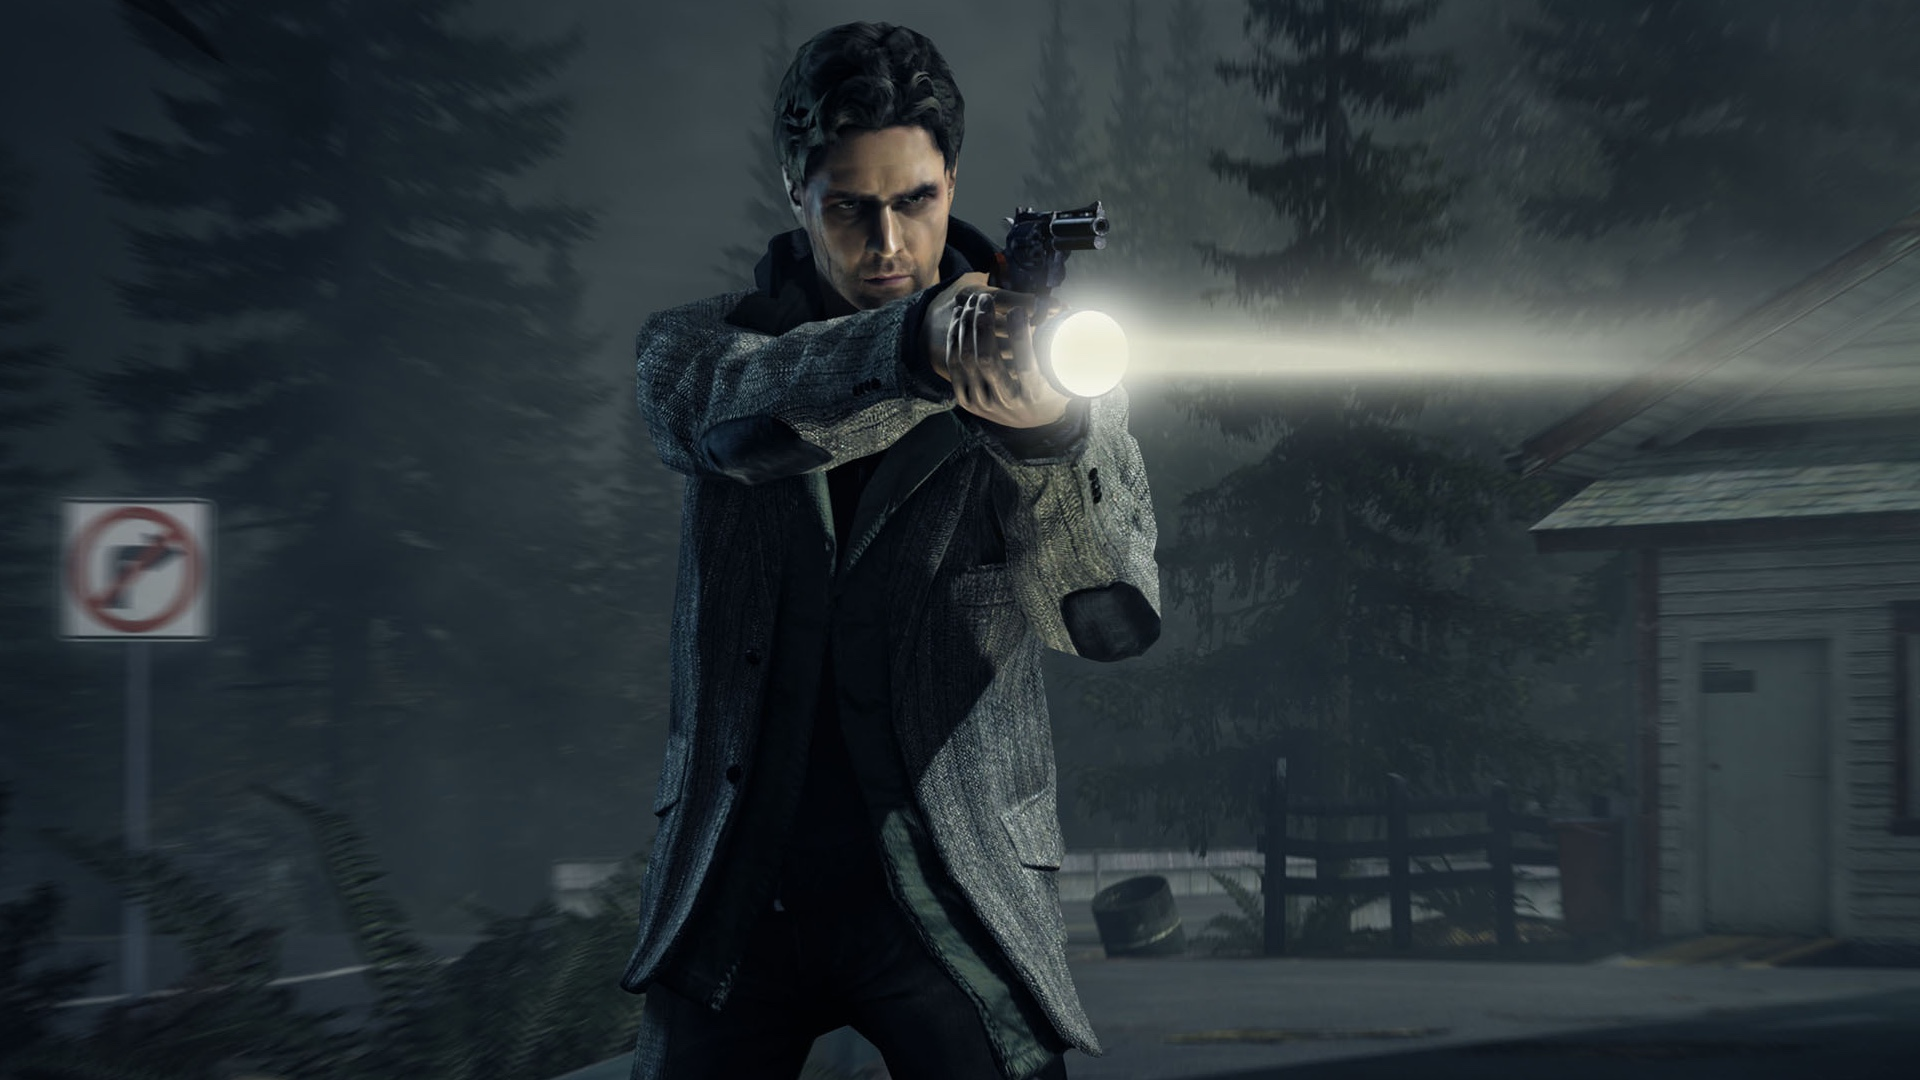 If you're a fan of the video game Alan Wake, you might be happy to hear  that there is now a live-action TV series in development.